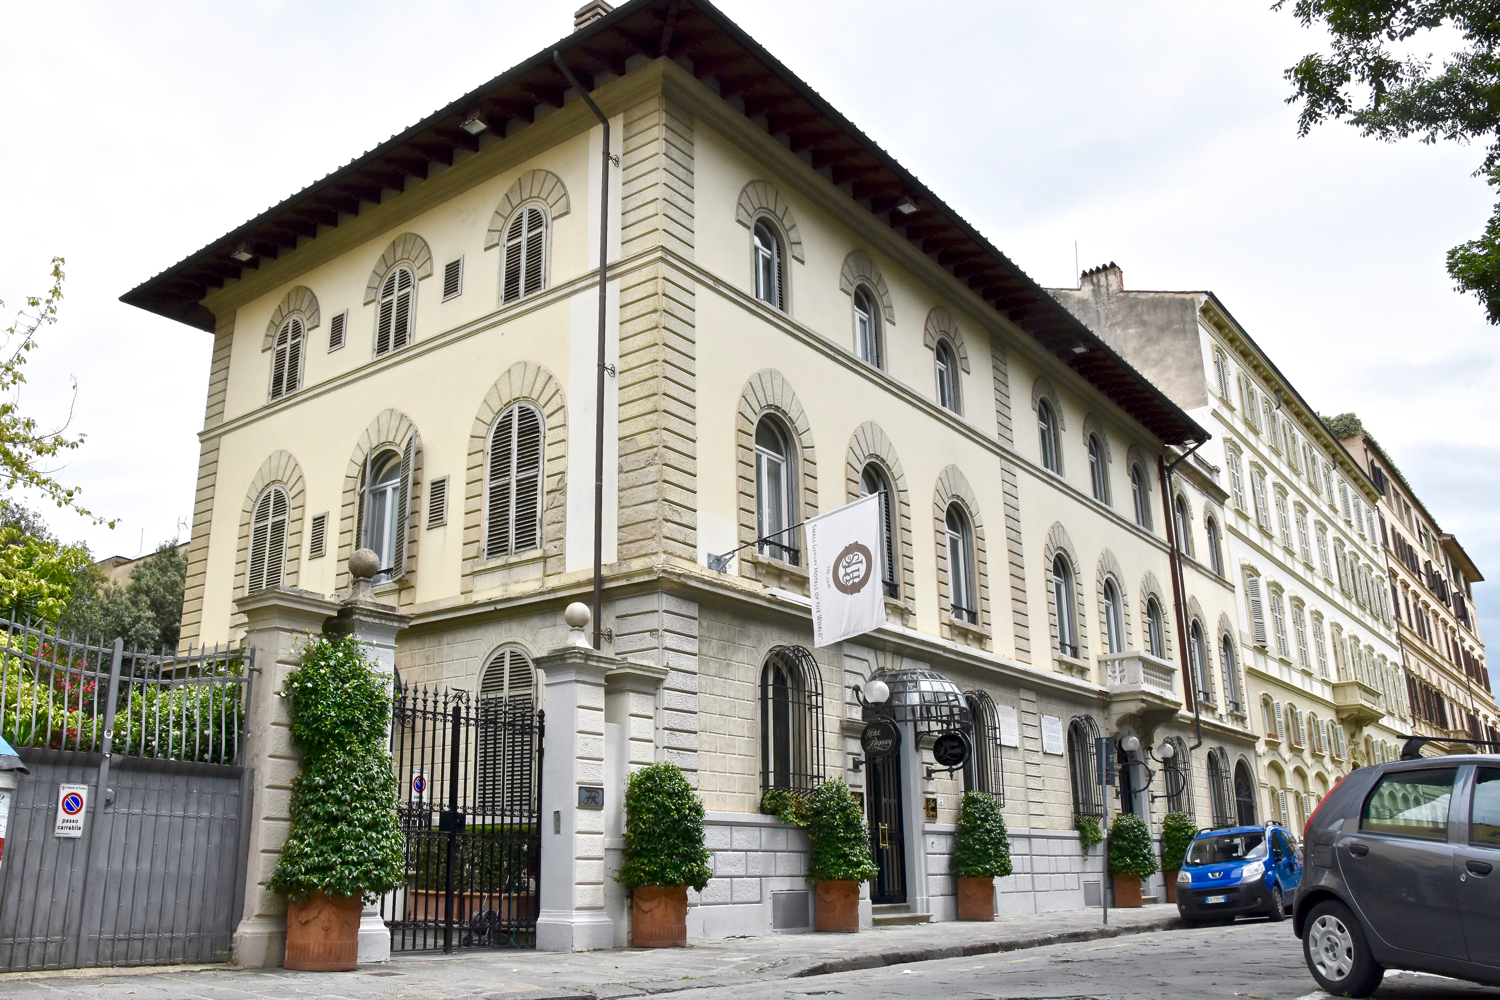 Hotel Regency Florence An Elegant And Intimate Palazzo In The Heart Of Florence Gastrology